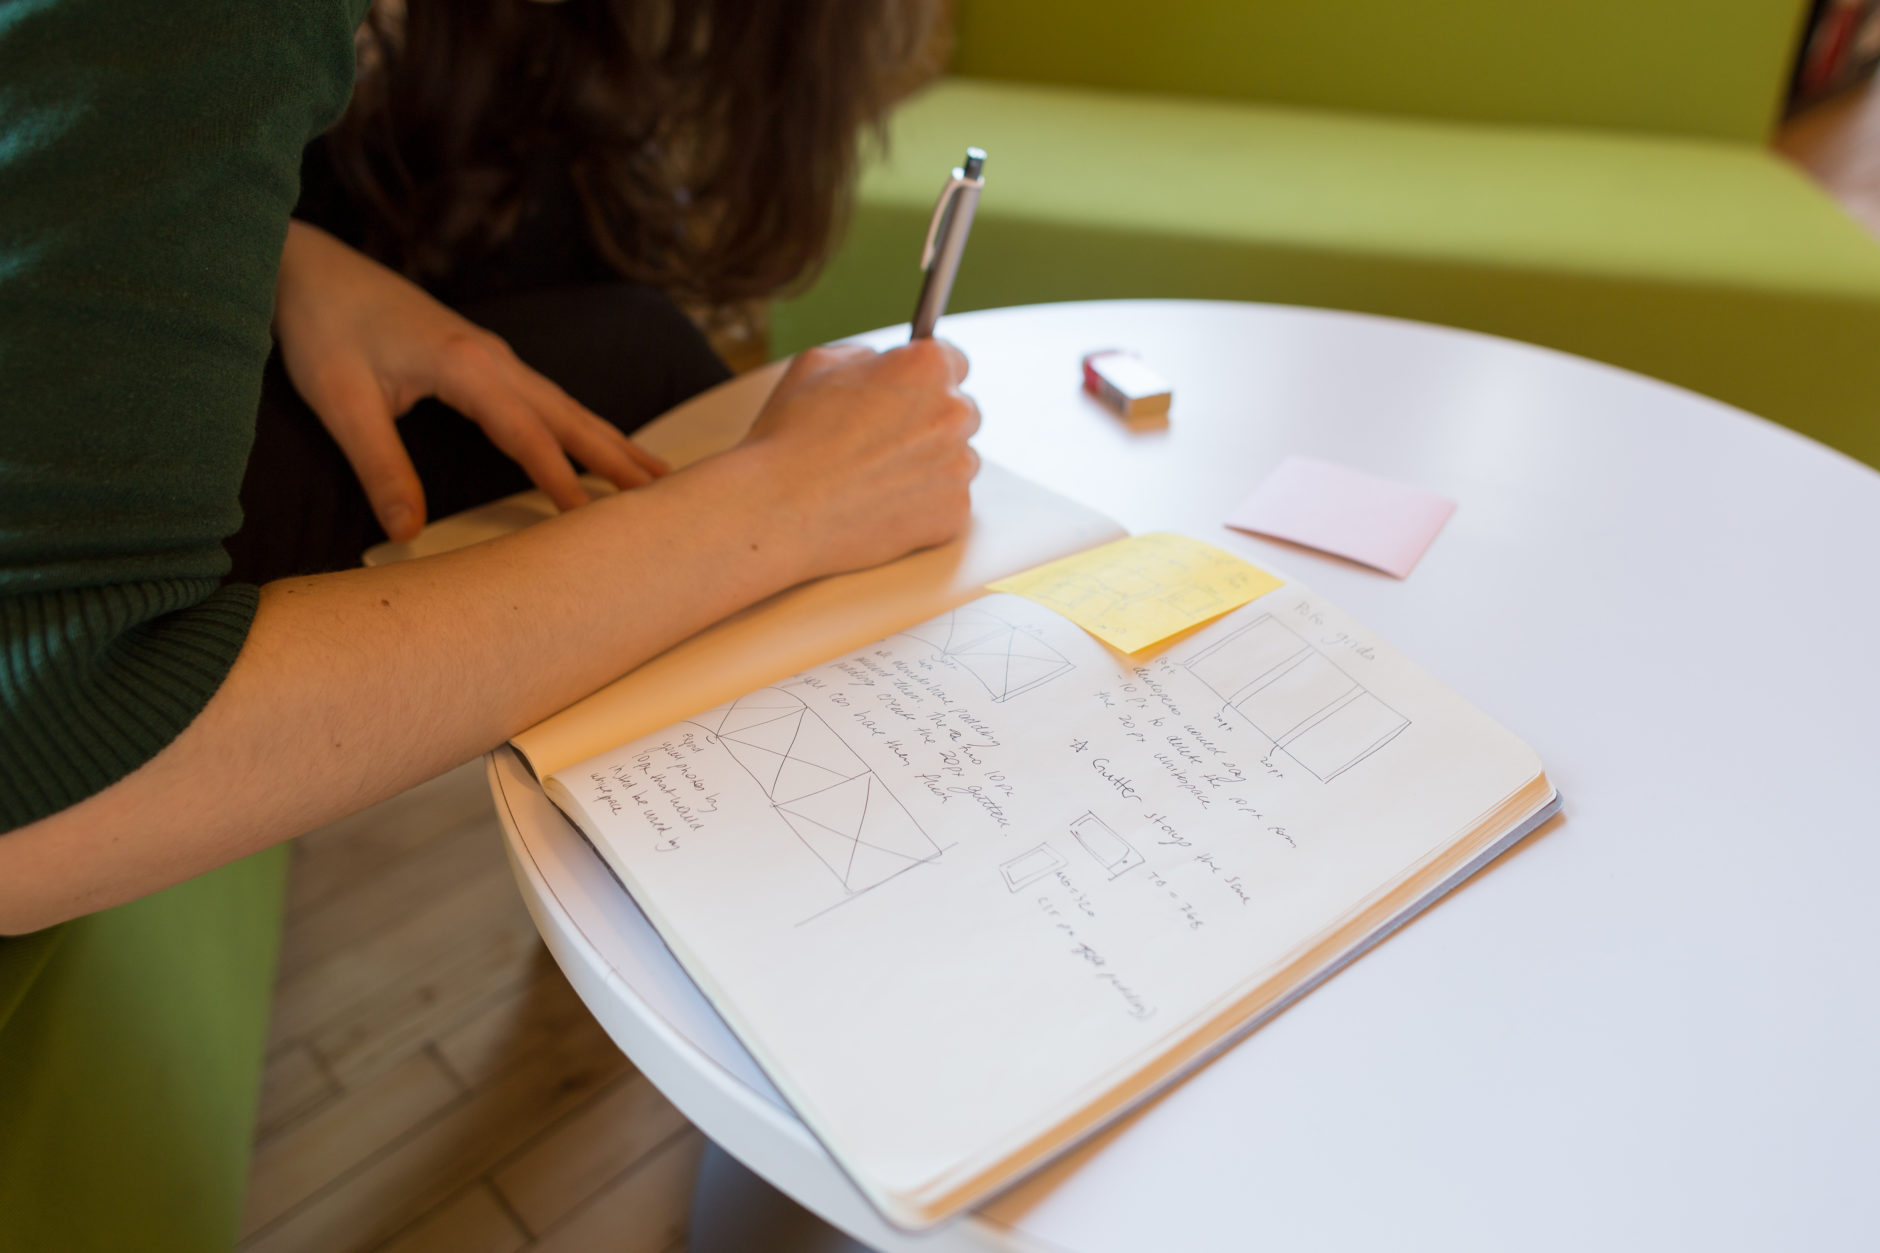 A UX designer is working alone, sketching in a notebook